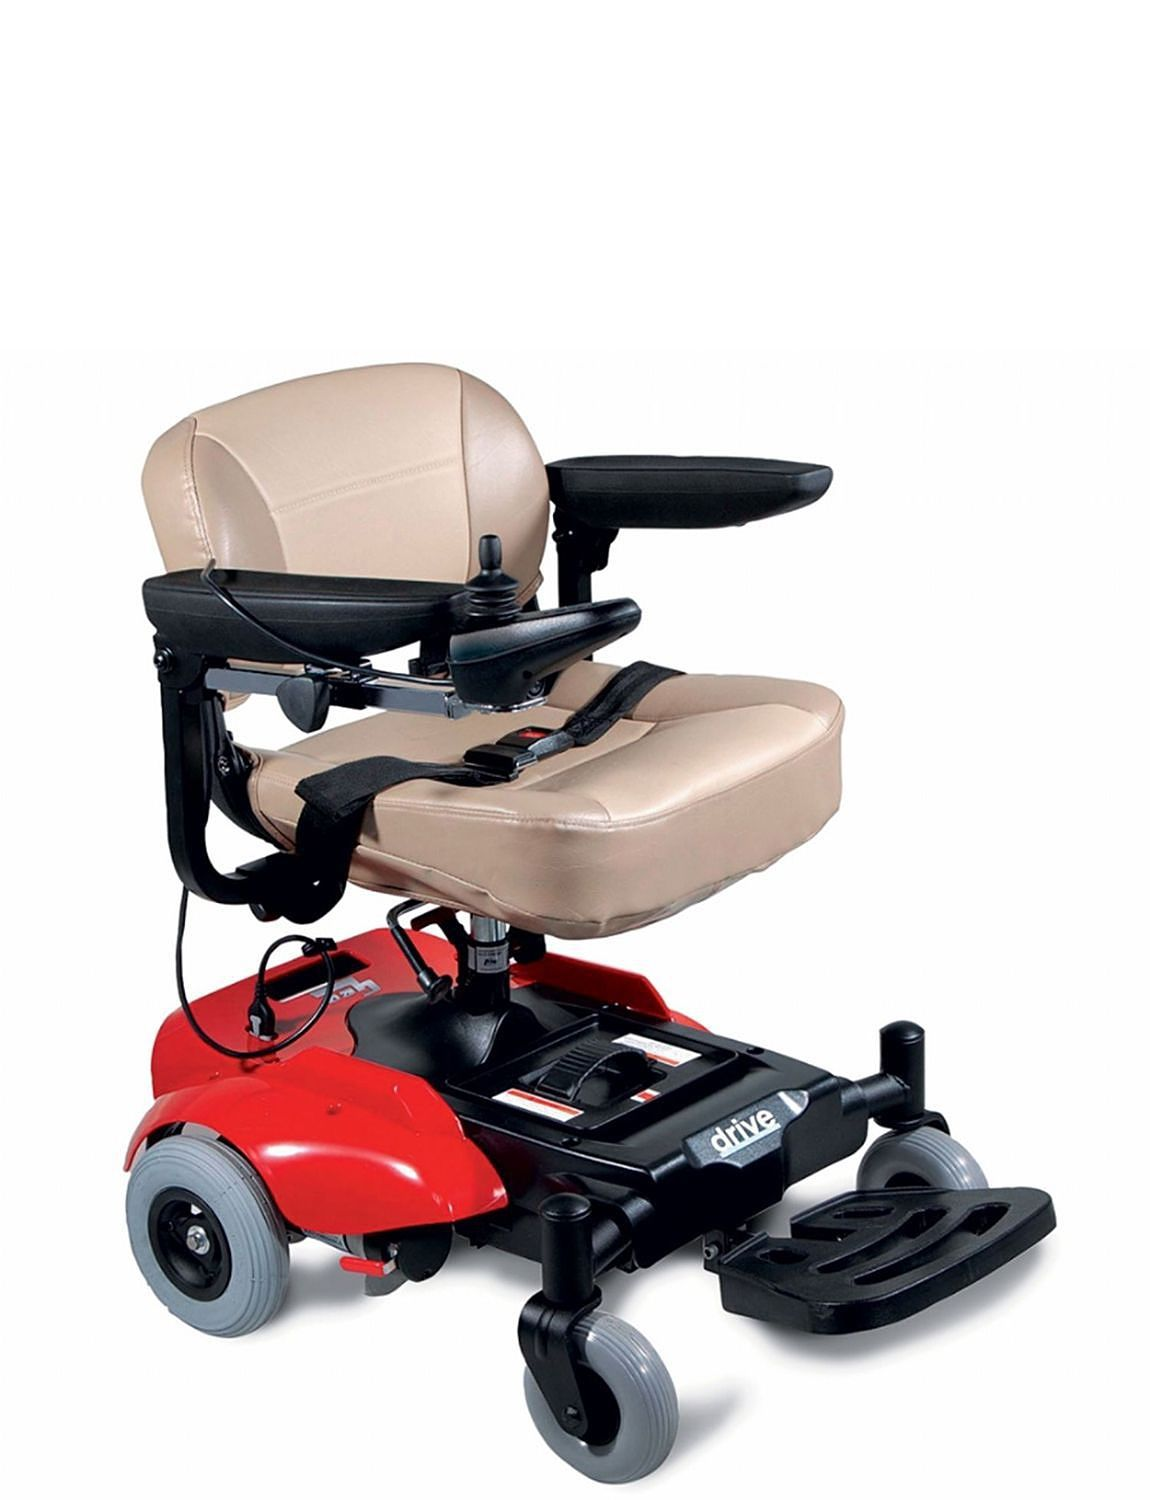 Portable indoor outdoor power chair mobility wheelchairs Portable motorized wheelchair